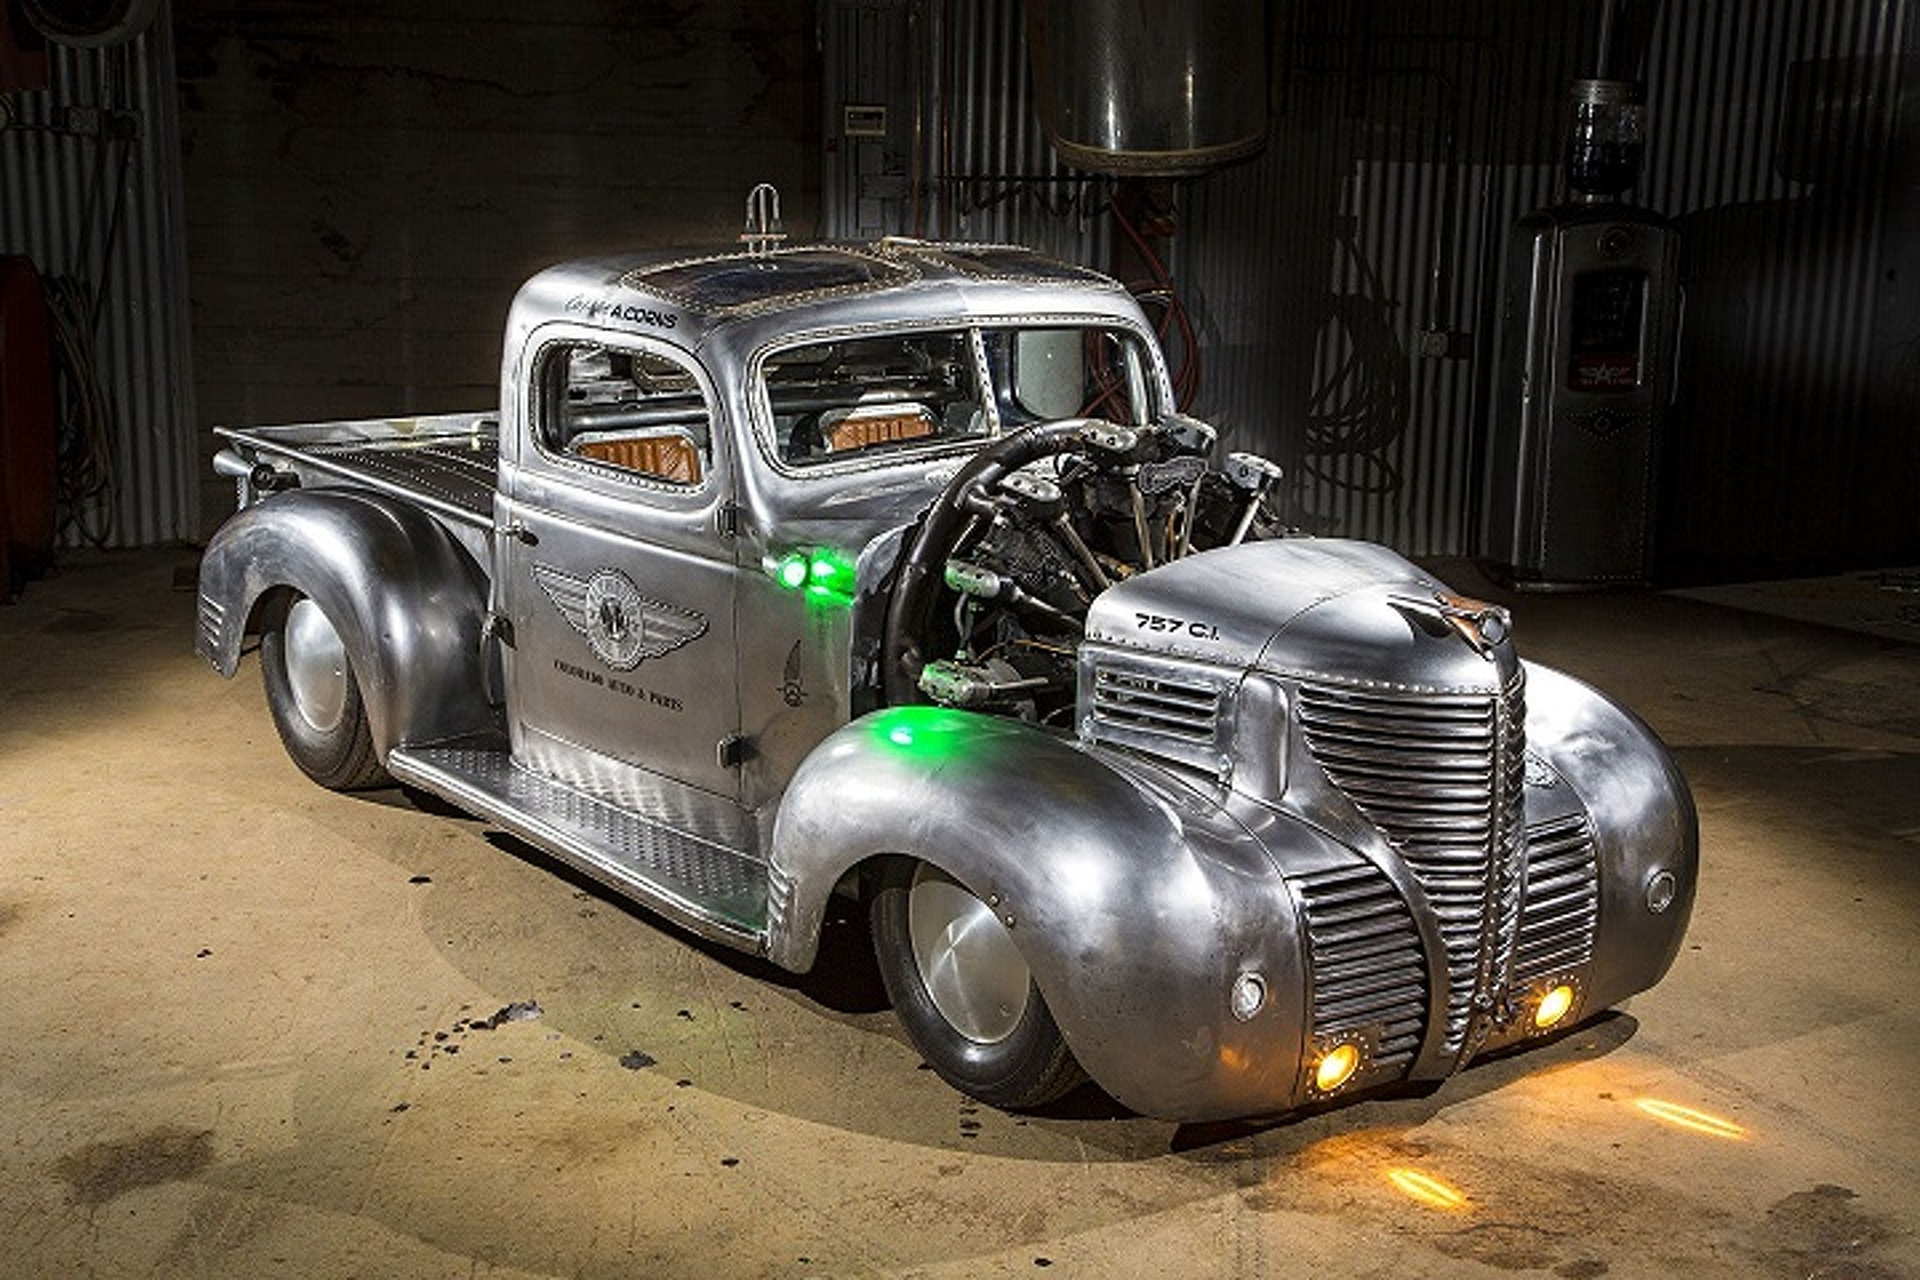 curieux montage - Page 6 1939-plymouth-pickup-hot-rod-is-an-apocalyptic-airplane-powered-piece-of-art